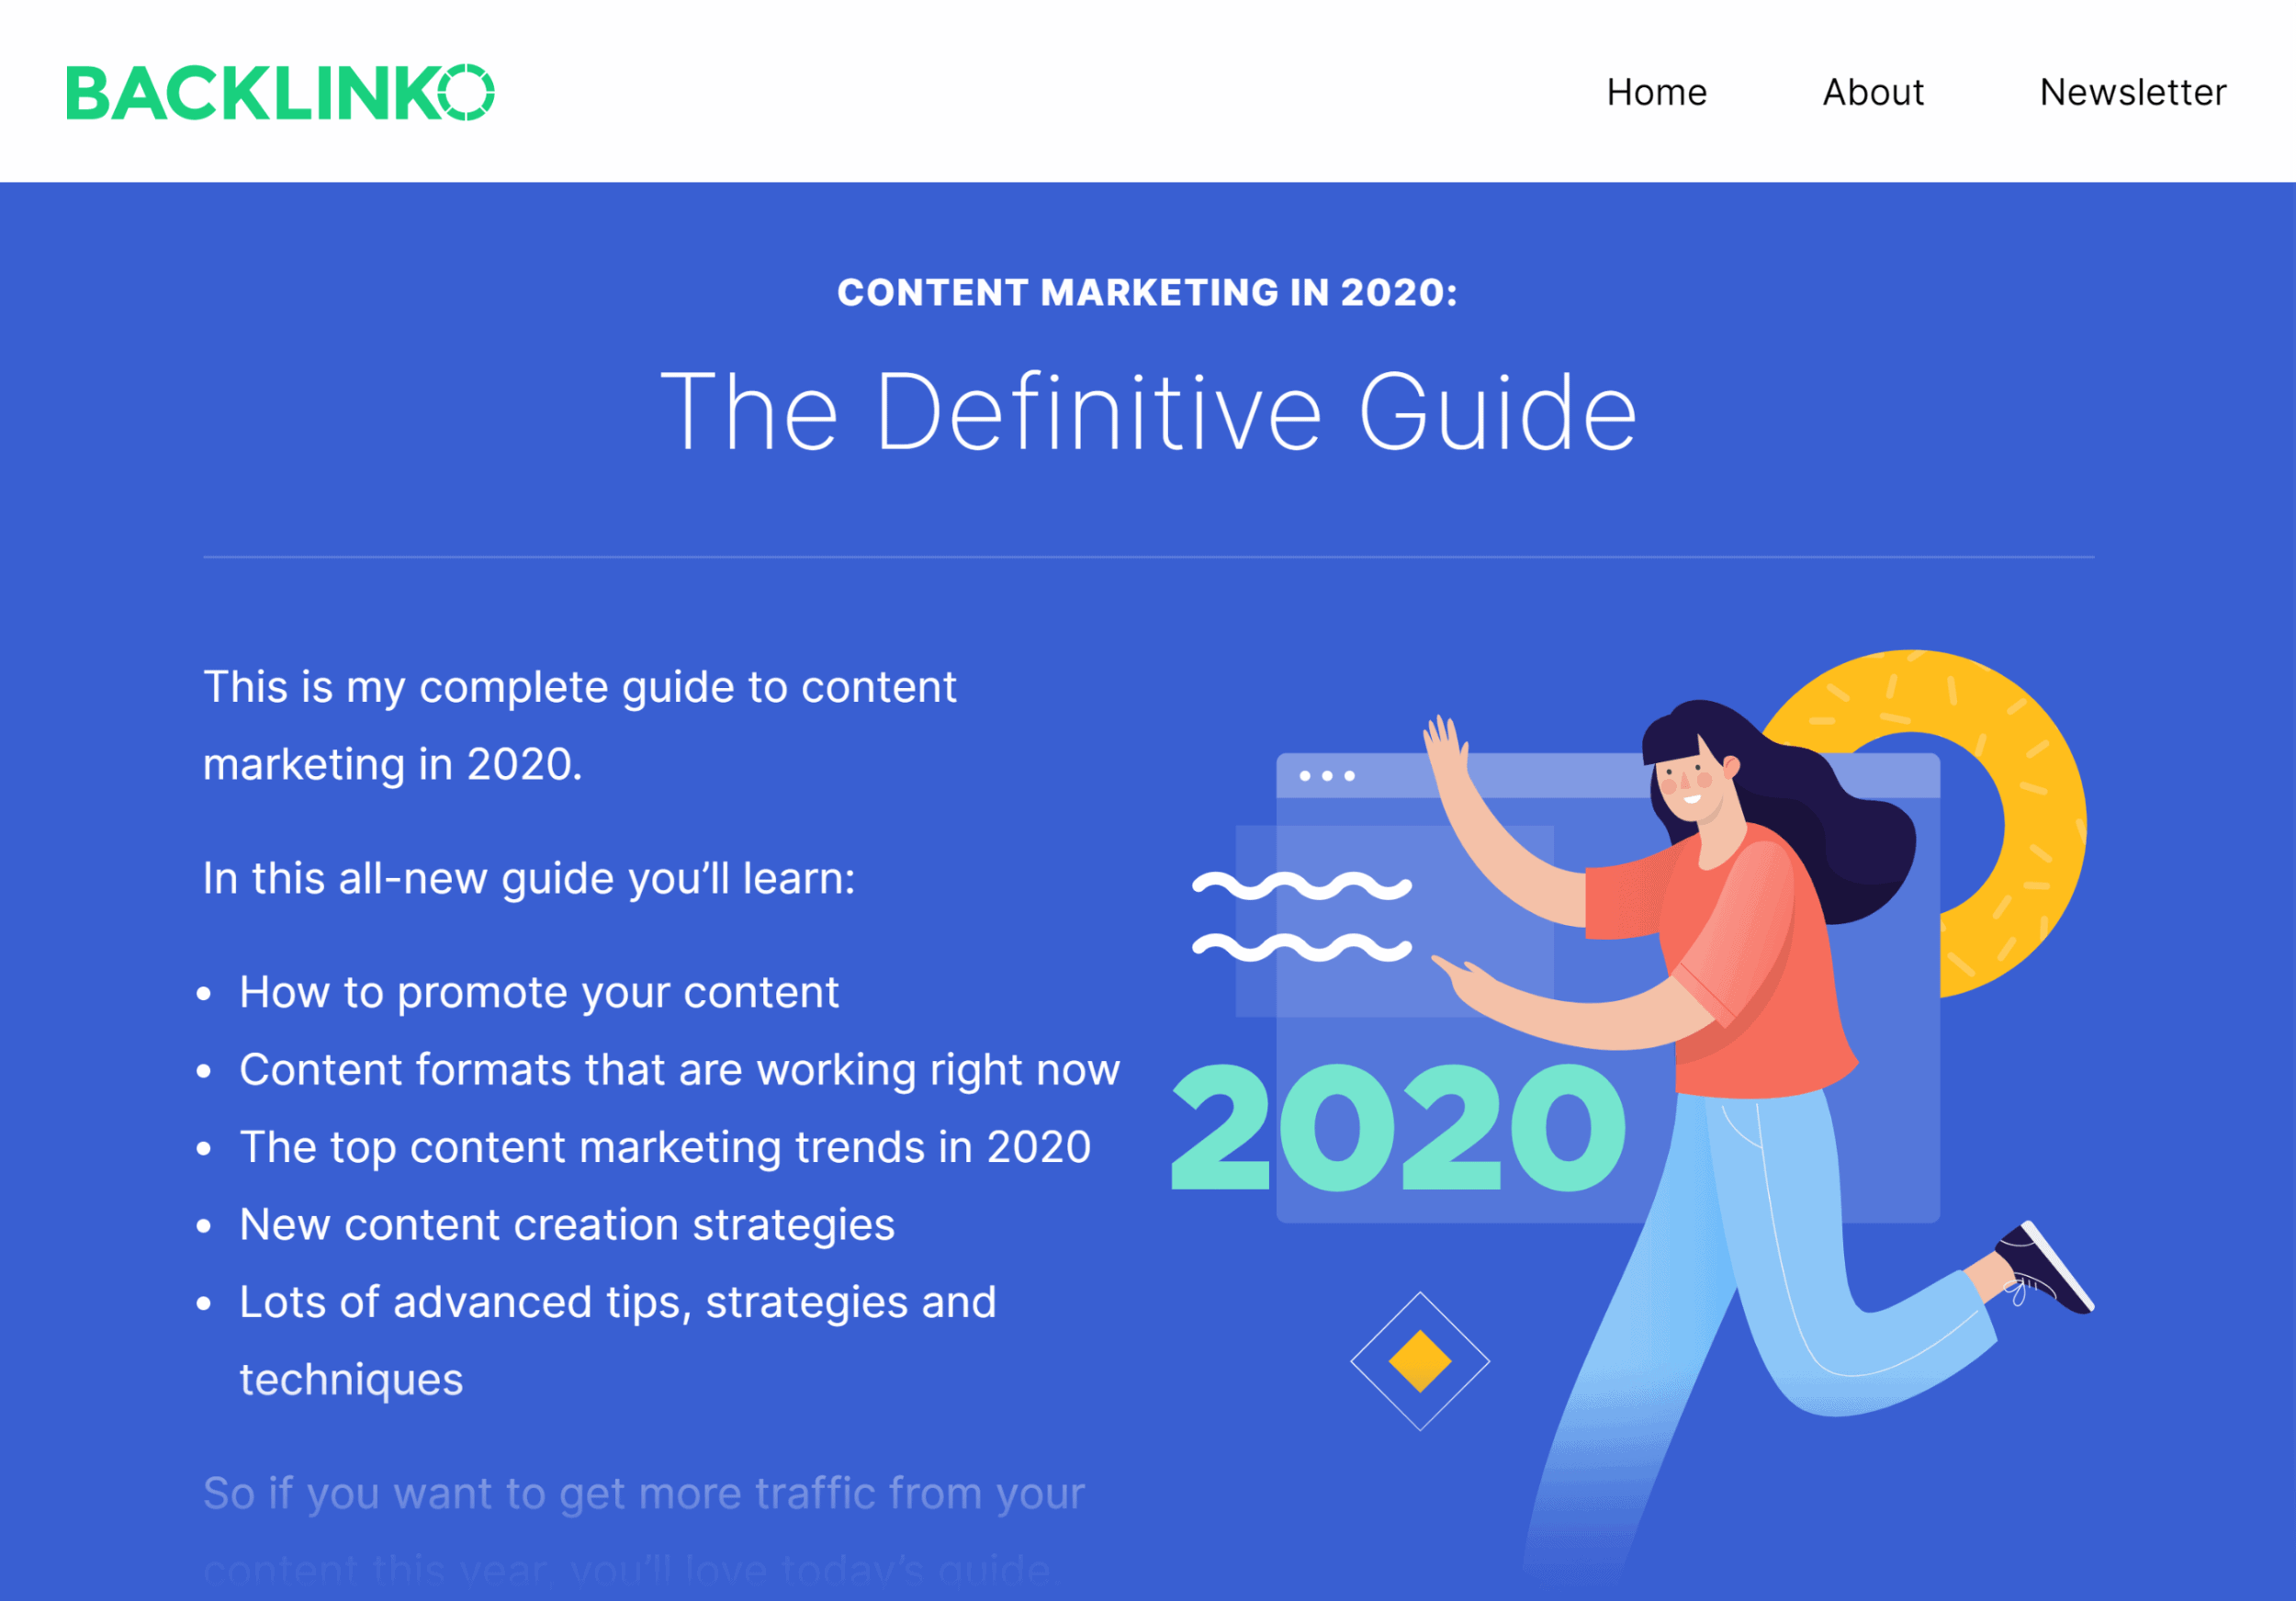 Backlinko – Content marketing this year